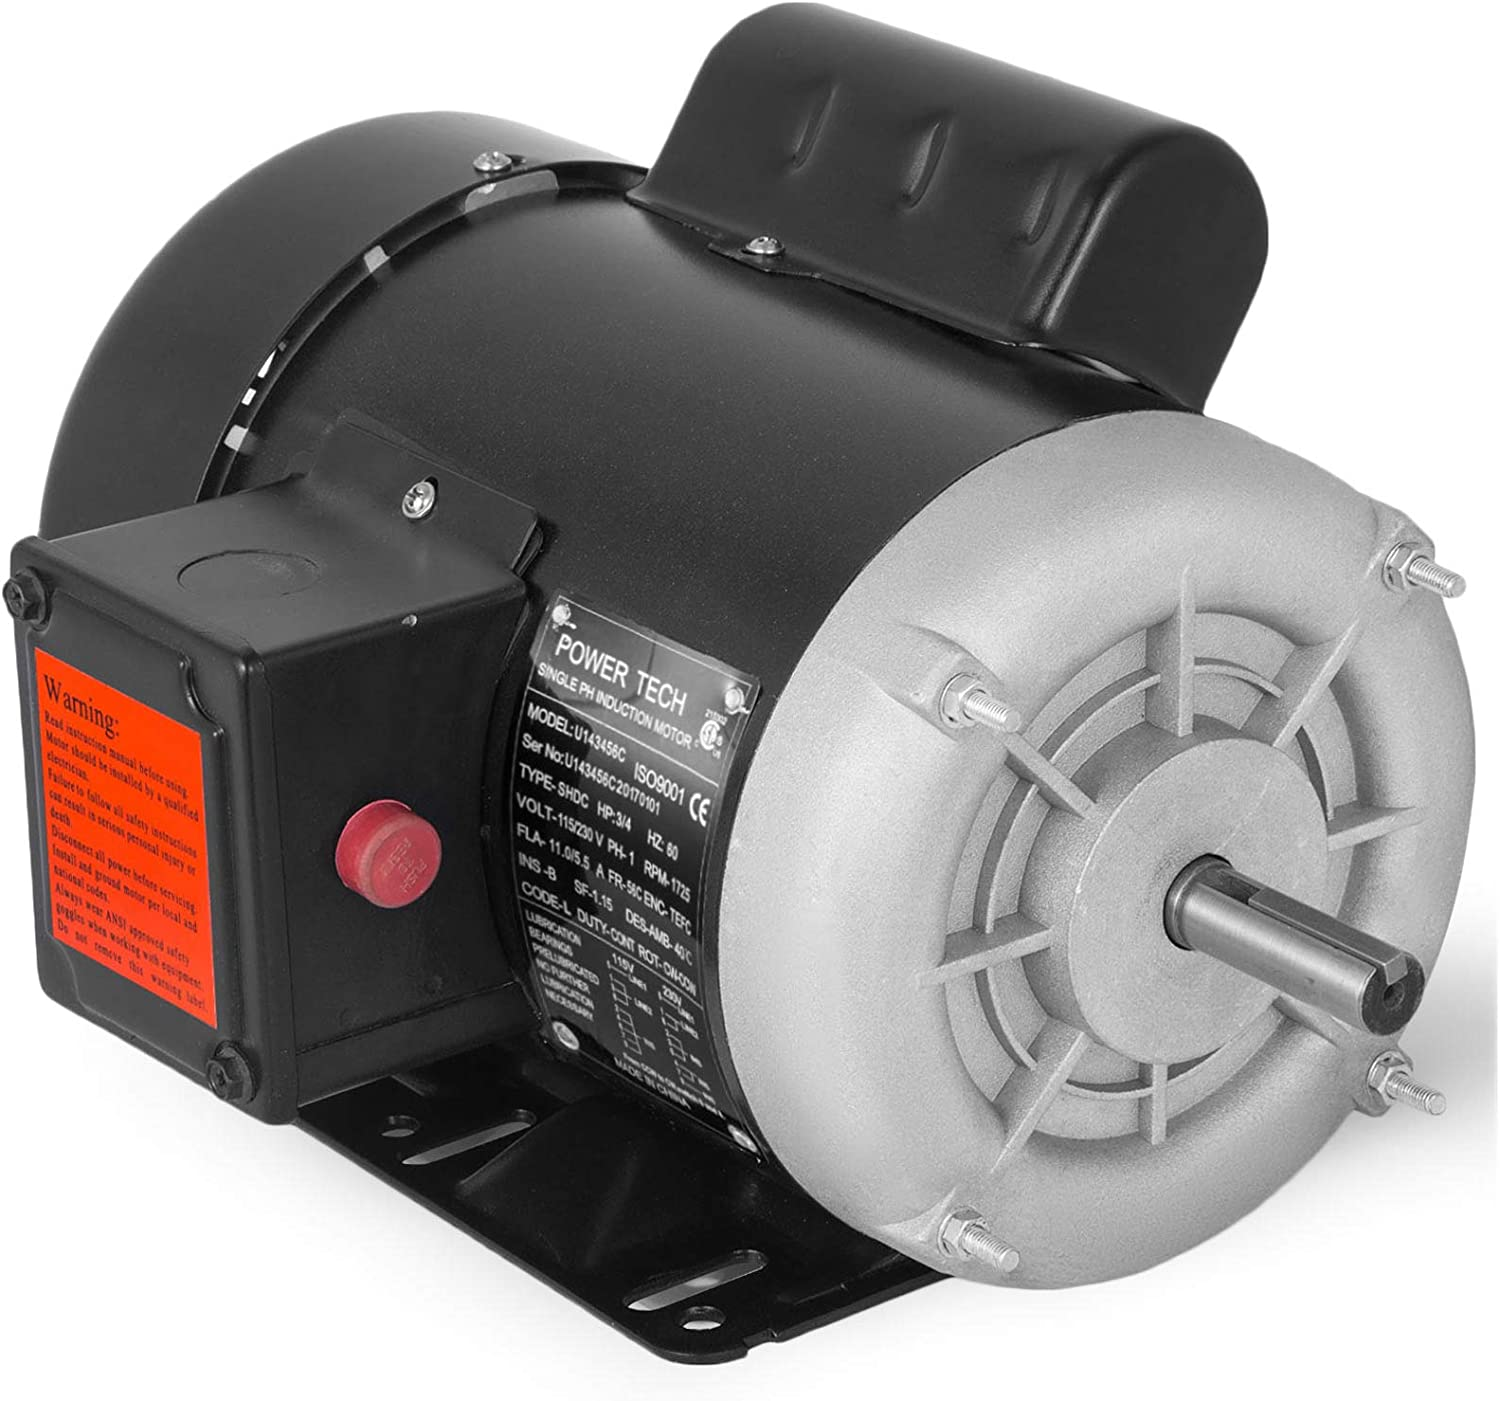 Mophorn 0.75 Hp Electric Motor Rated Speed 1725 RPM Single Phase Motor AC 115V 230V Air Compressor Motor 56C Frame Suit for Agricultural Machinery and General Equipment